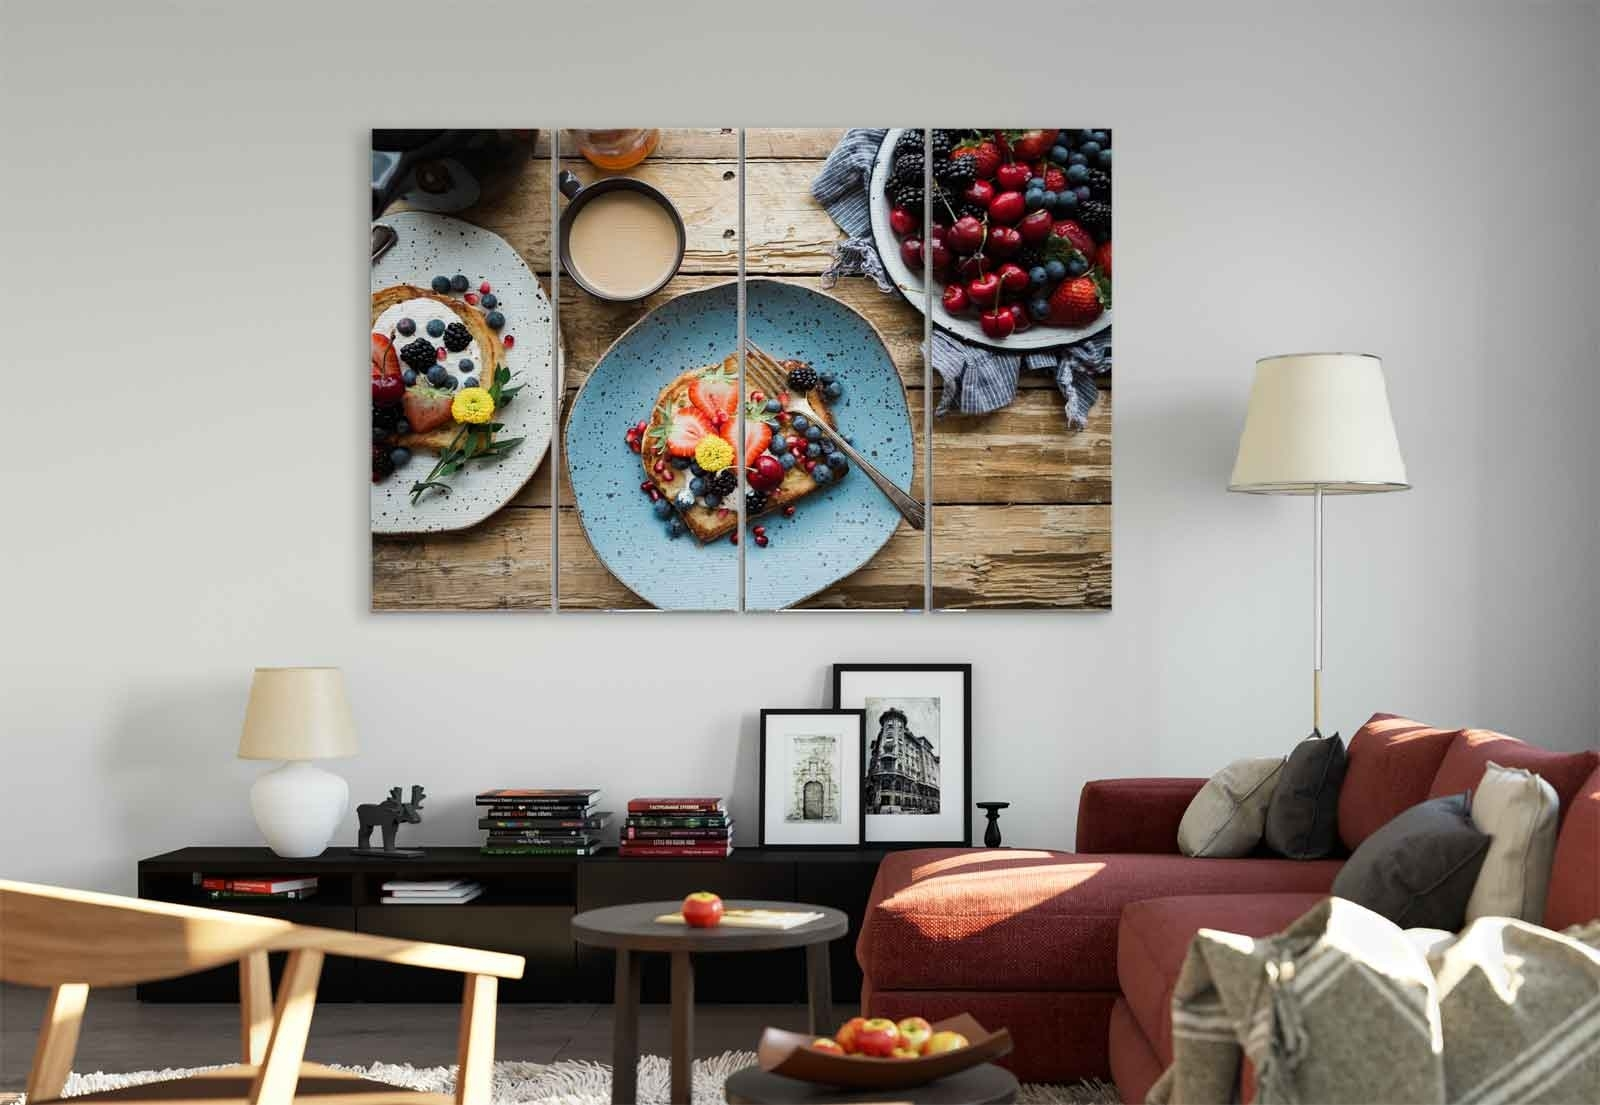 Breakfast Berries Toast Coffee Canvas & Glass Wall Art Pictures (fw Throughout 2017 Coffee Wall Art (View 14 of 15)